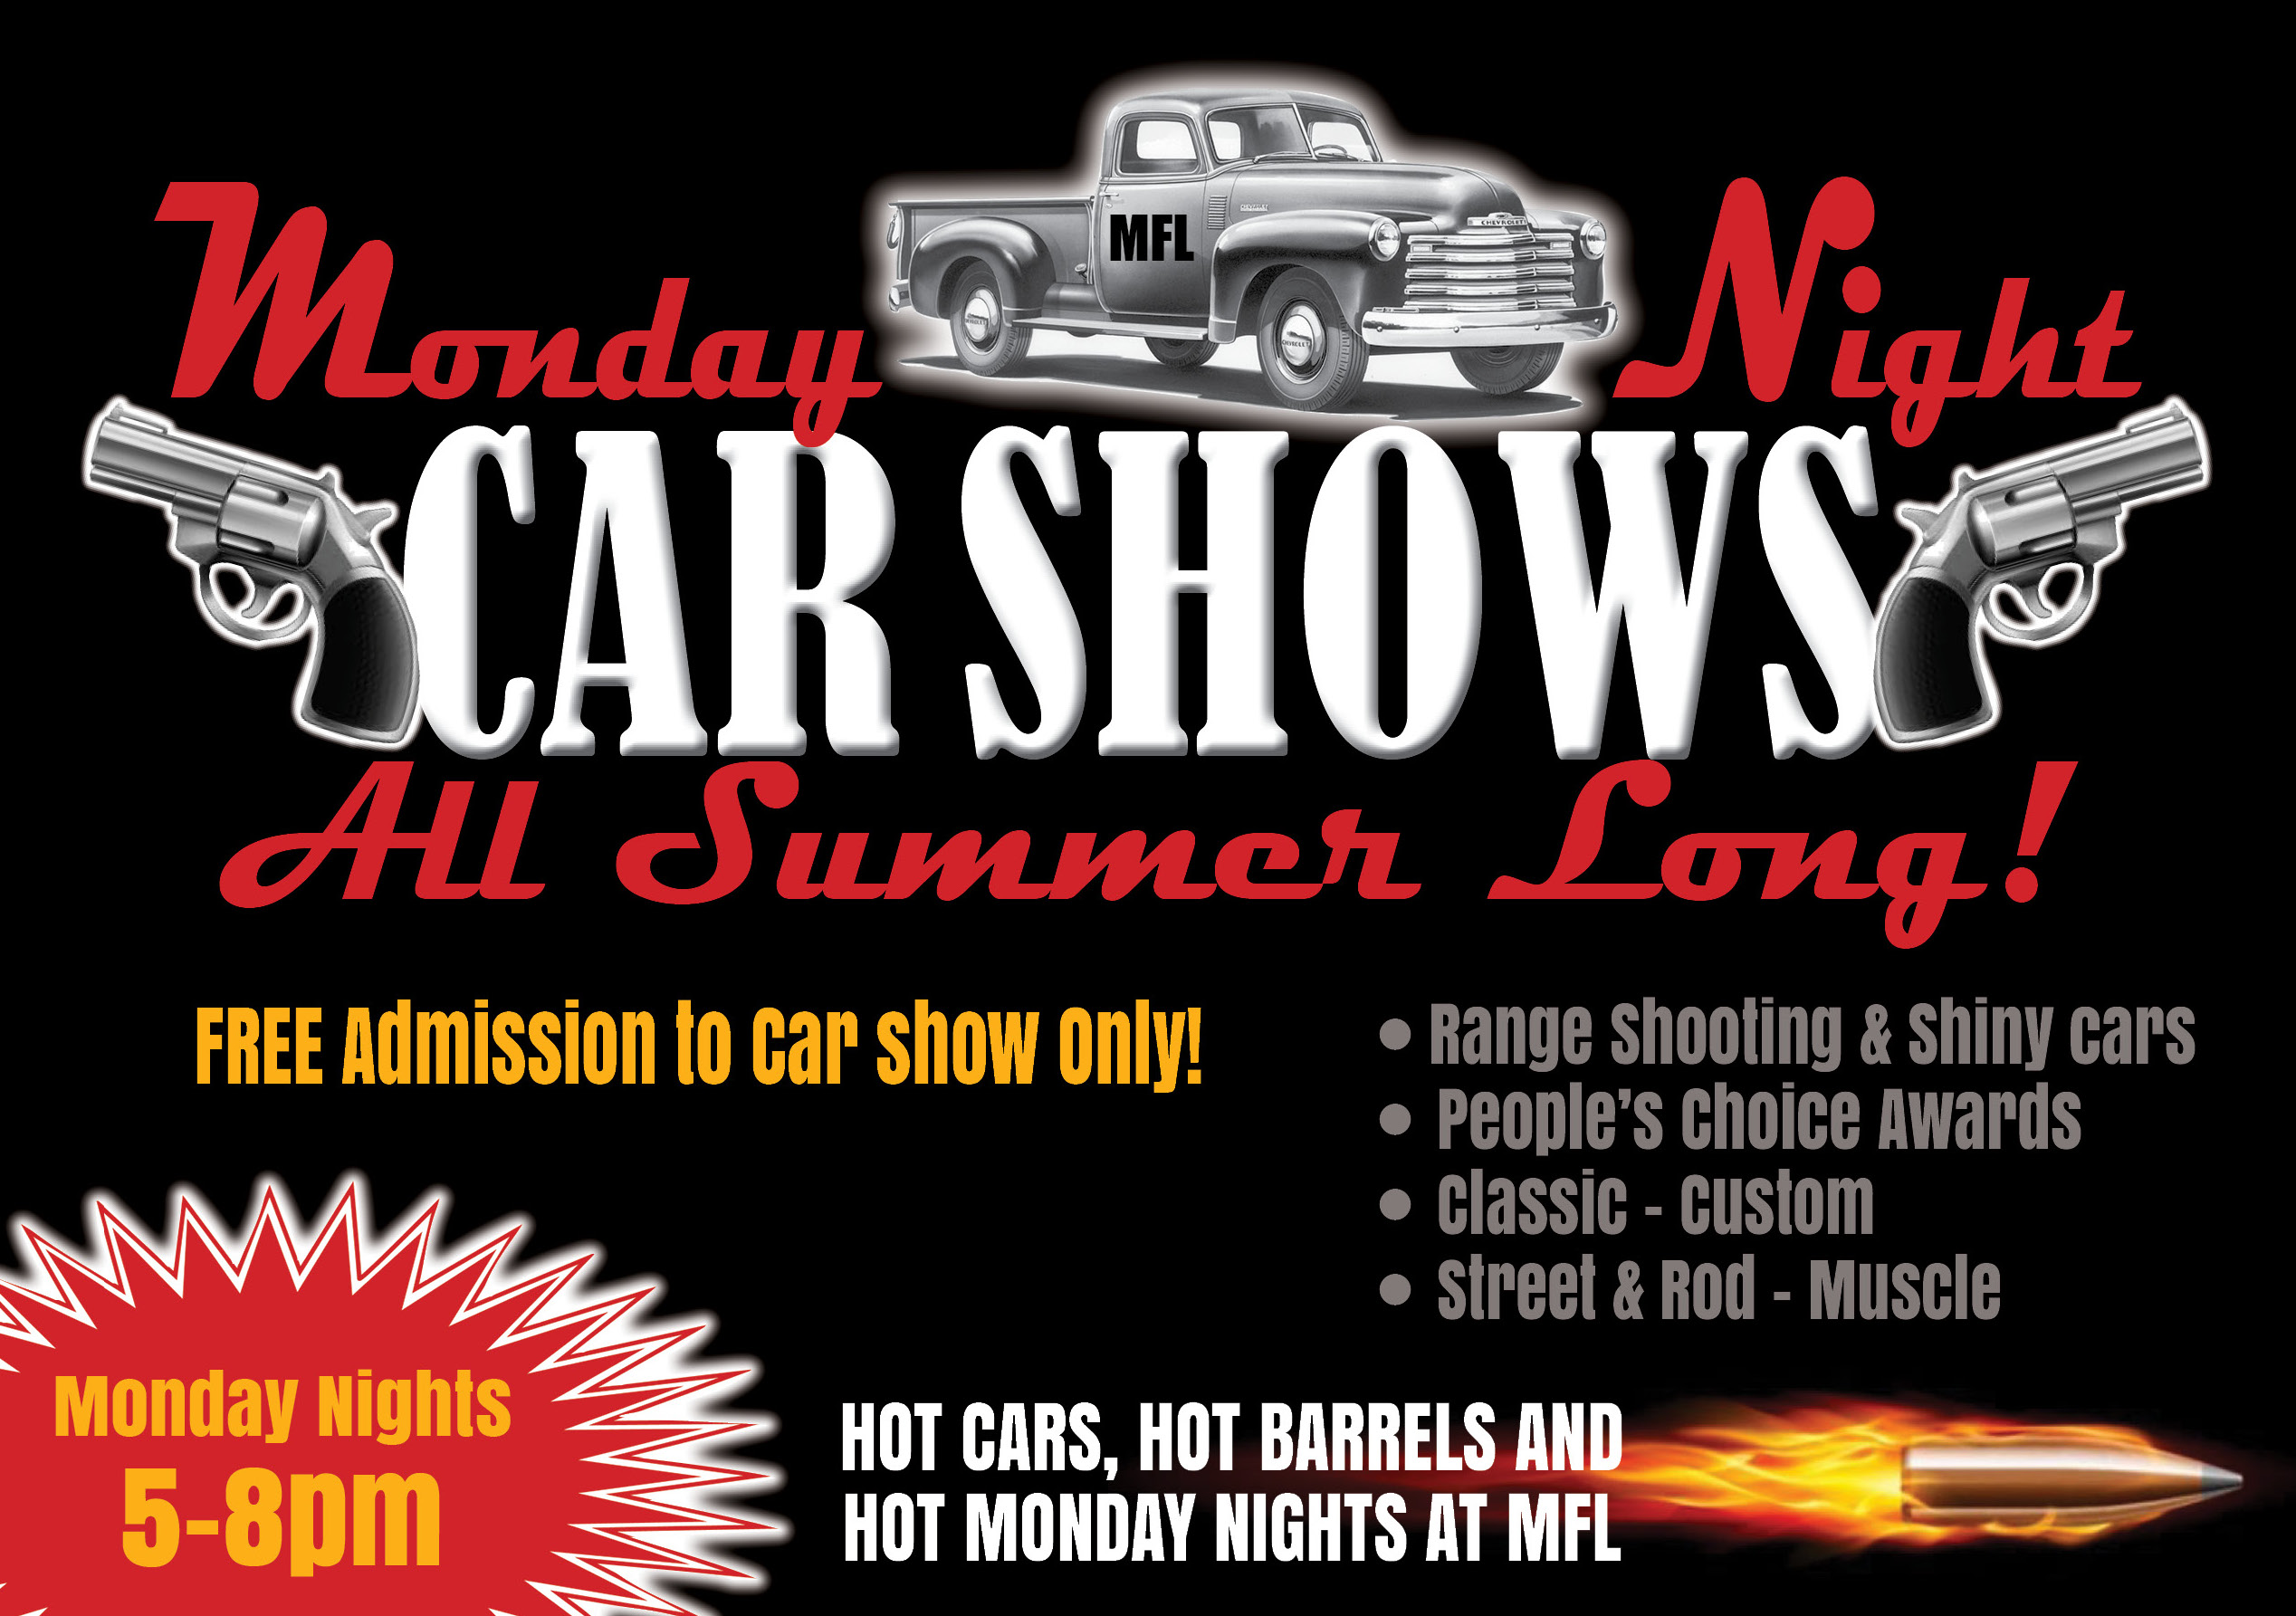 MFL_Monday Night Car Show OUTSIDE Sign Banner_Pixels_1.jpg